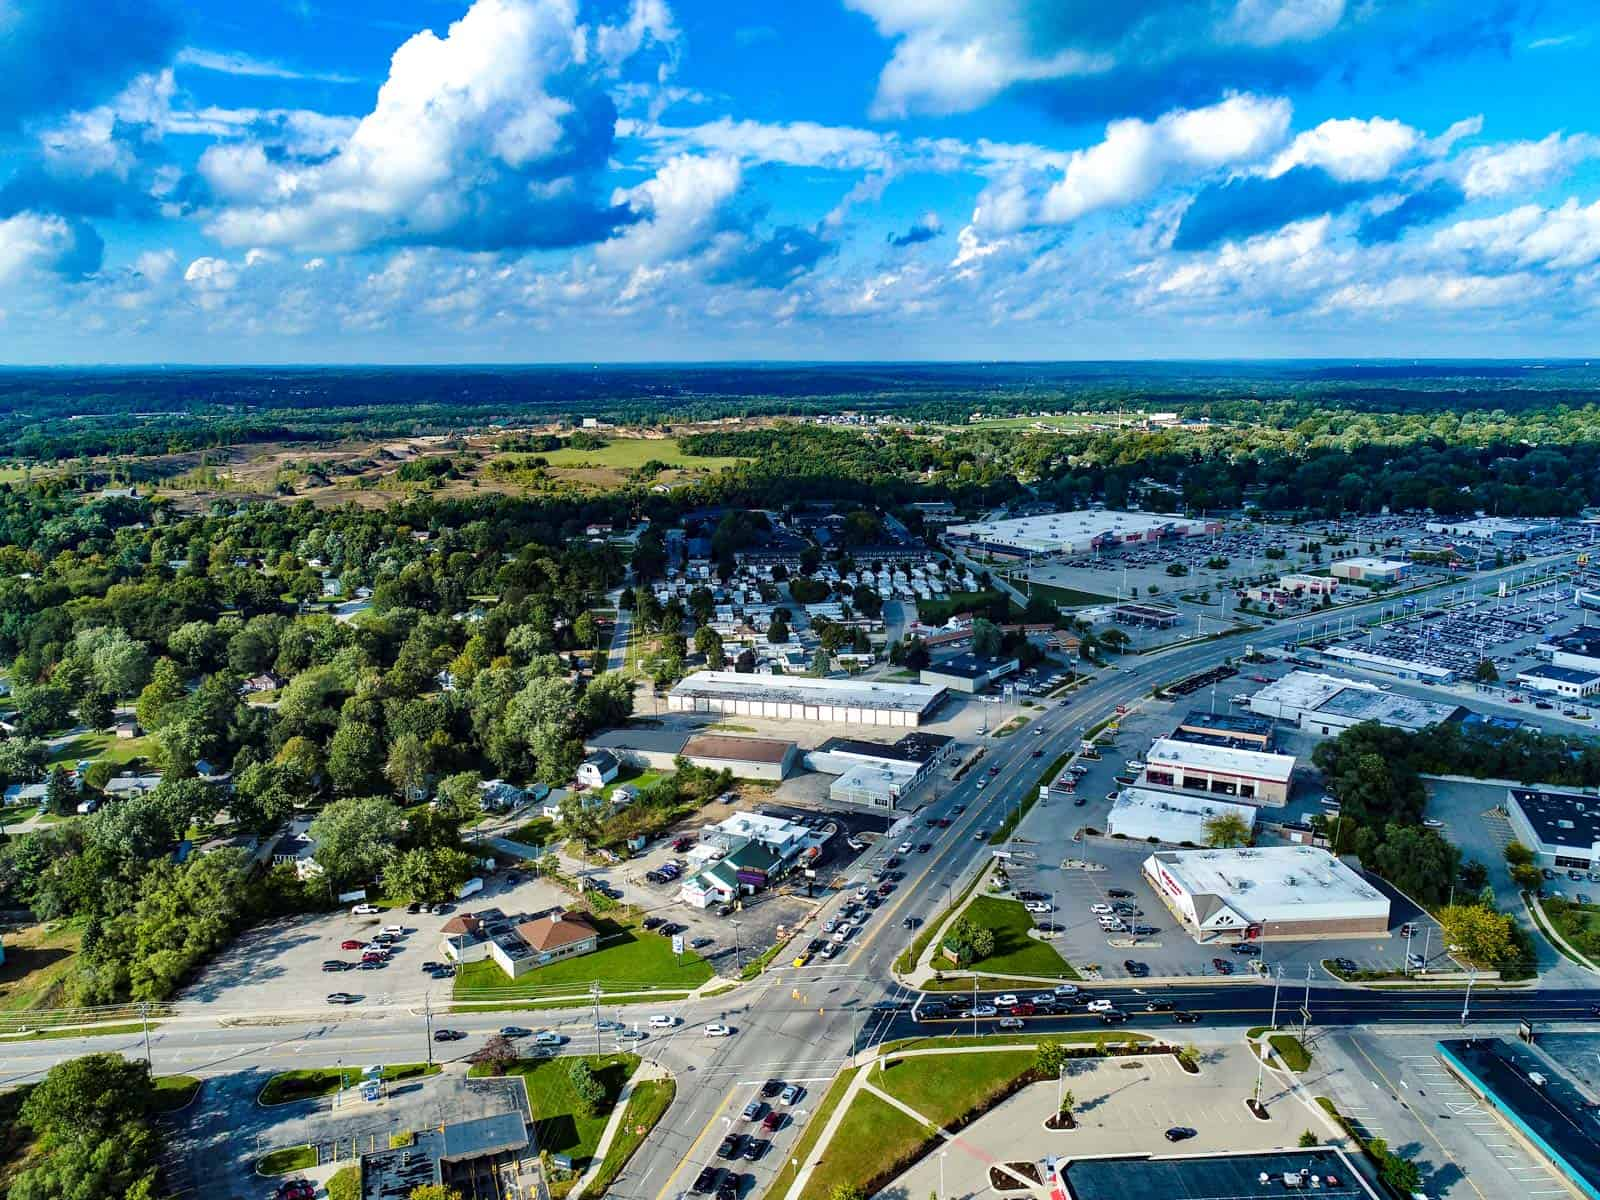 aerial drone photo of commercial real estate shopping plaza next to intersection in Grand Rapids, MI